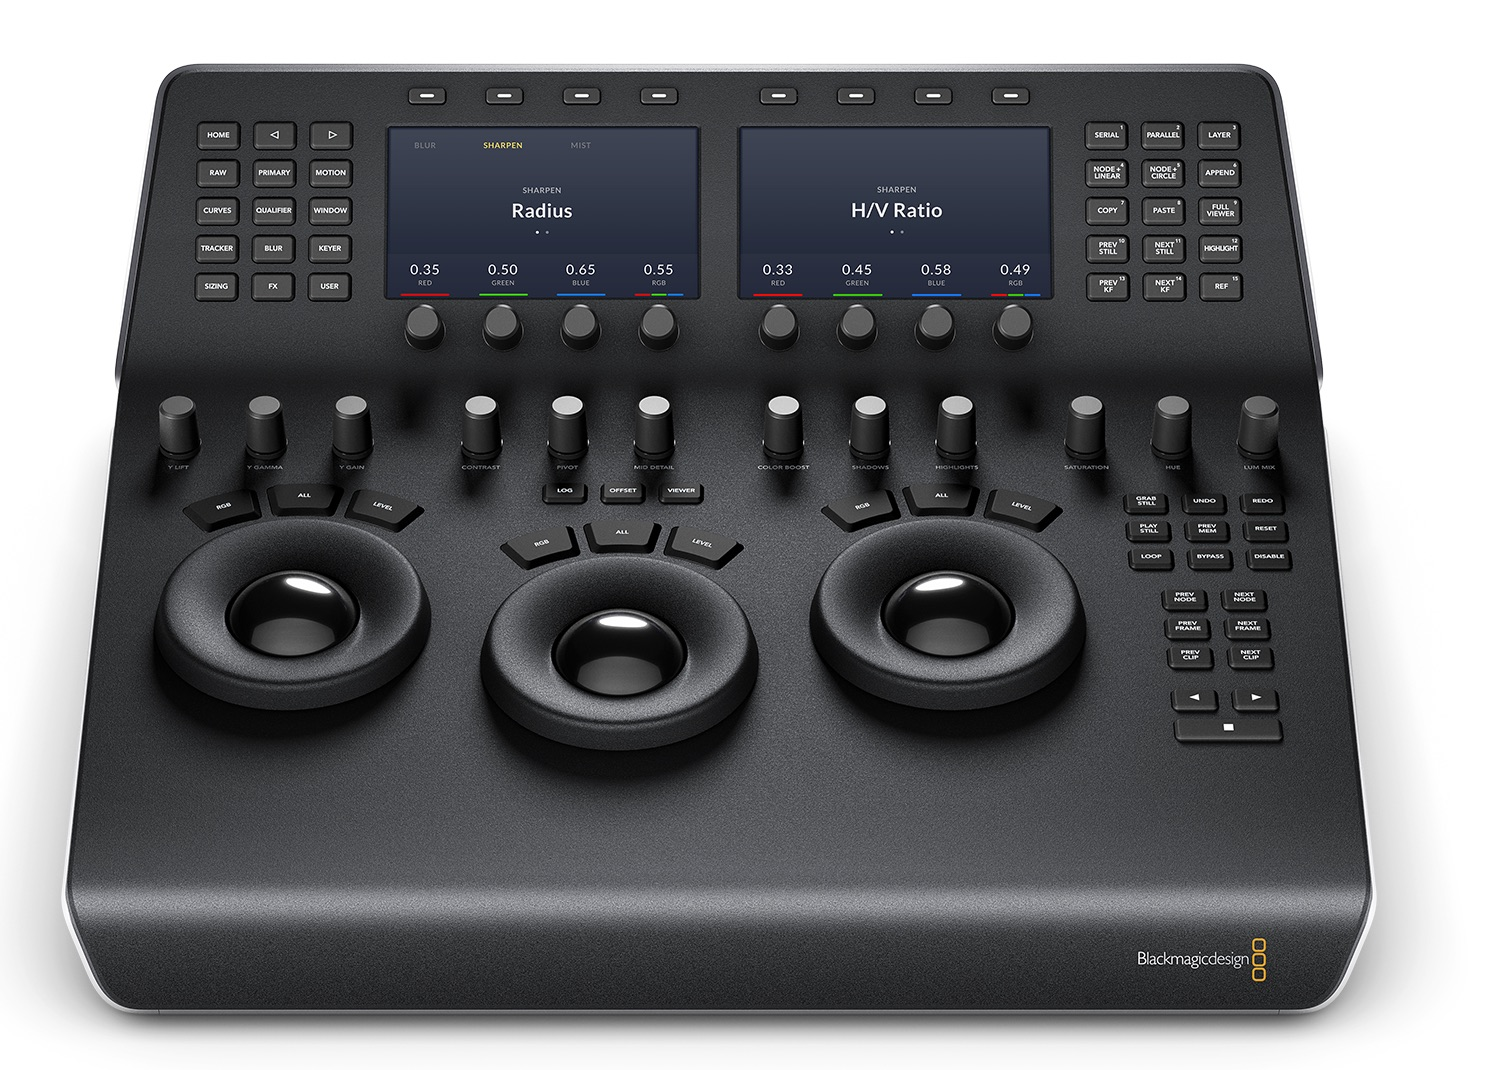 Blackmagic Design introduces two new color grading panels for DaVinci Resolve 2